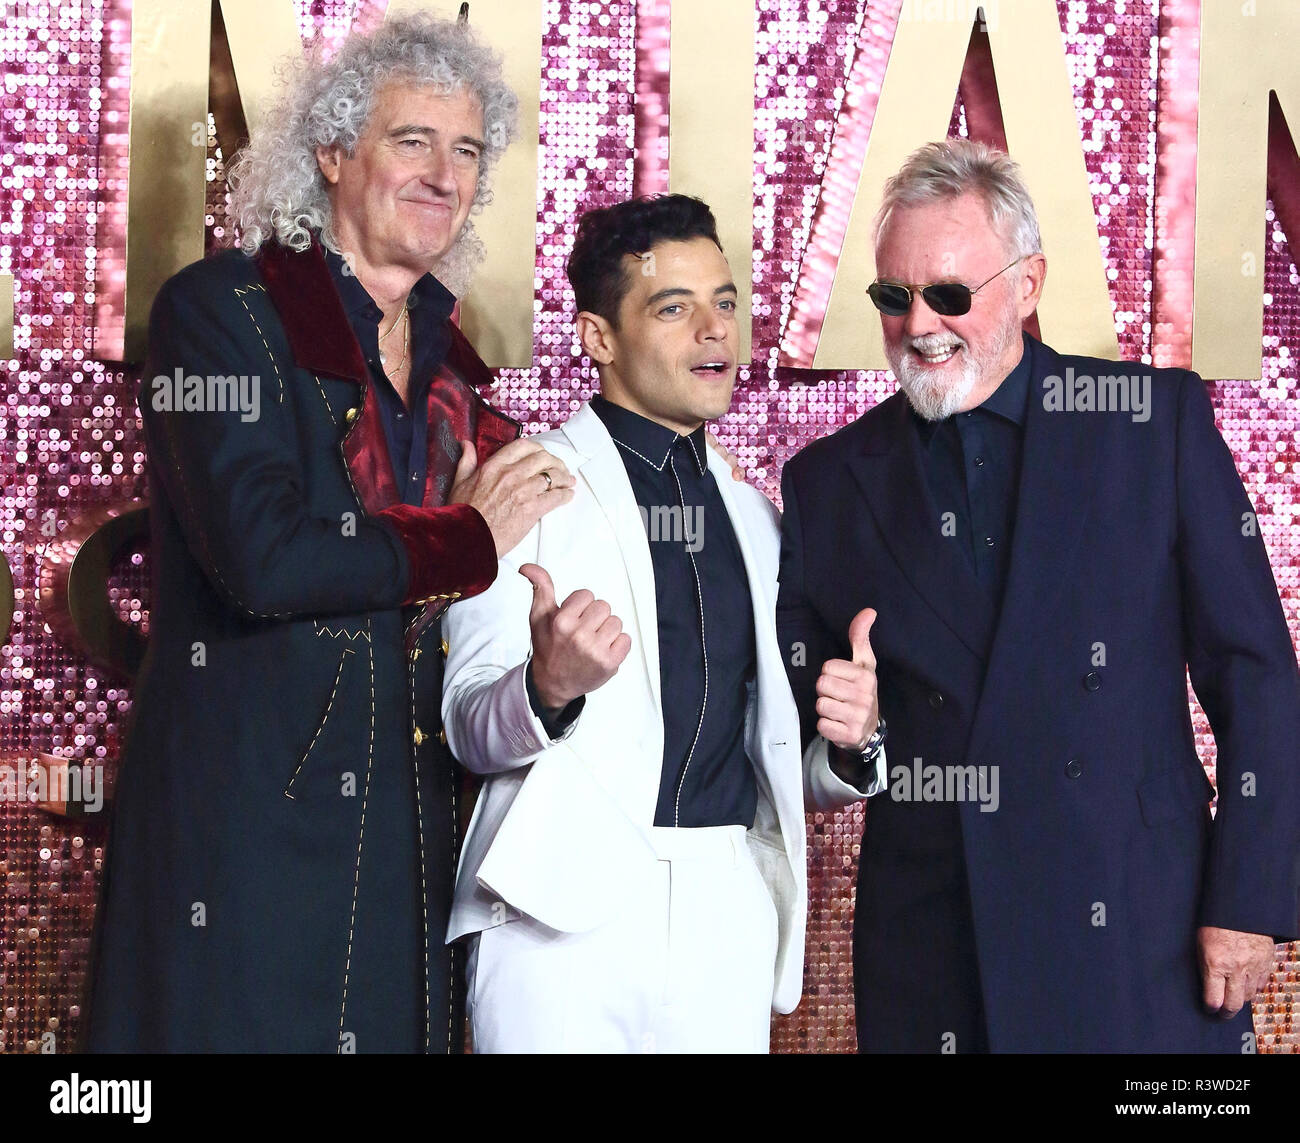 Bohemian Rhapsody UK Premiere au SSE Arena Wembley, Londres avec : Brian May, Rami Malek, Roger Taylor Où : London, Royaume-Uni Quand : 23 Oct 2018 Source : WENN.com Banque D'Images